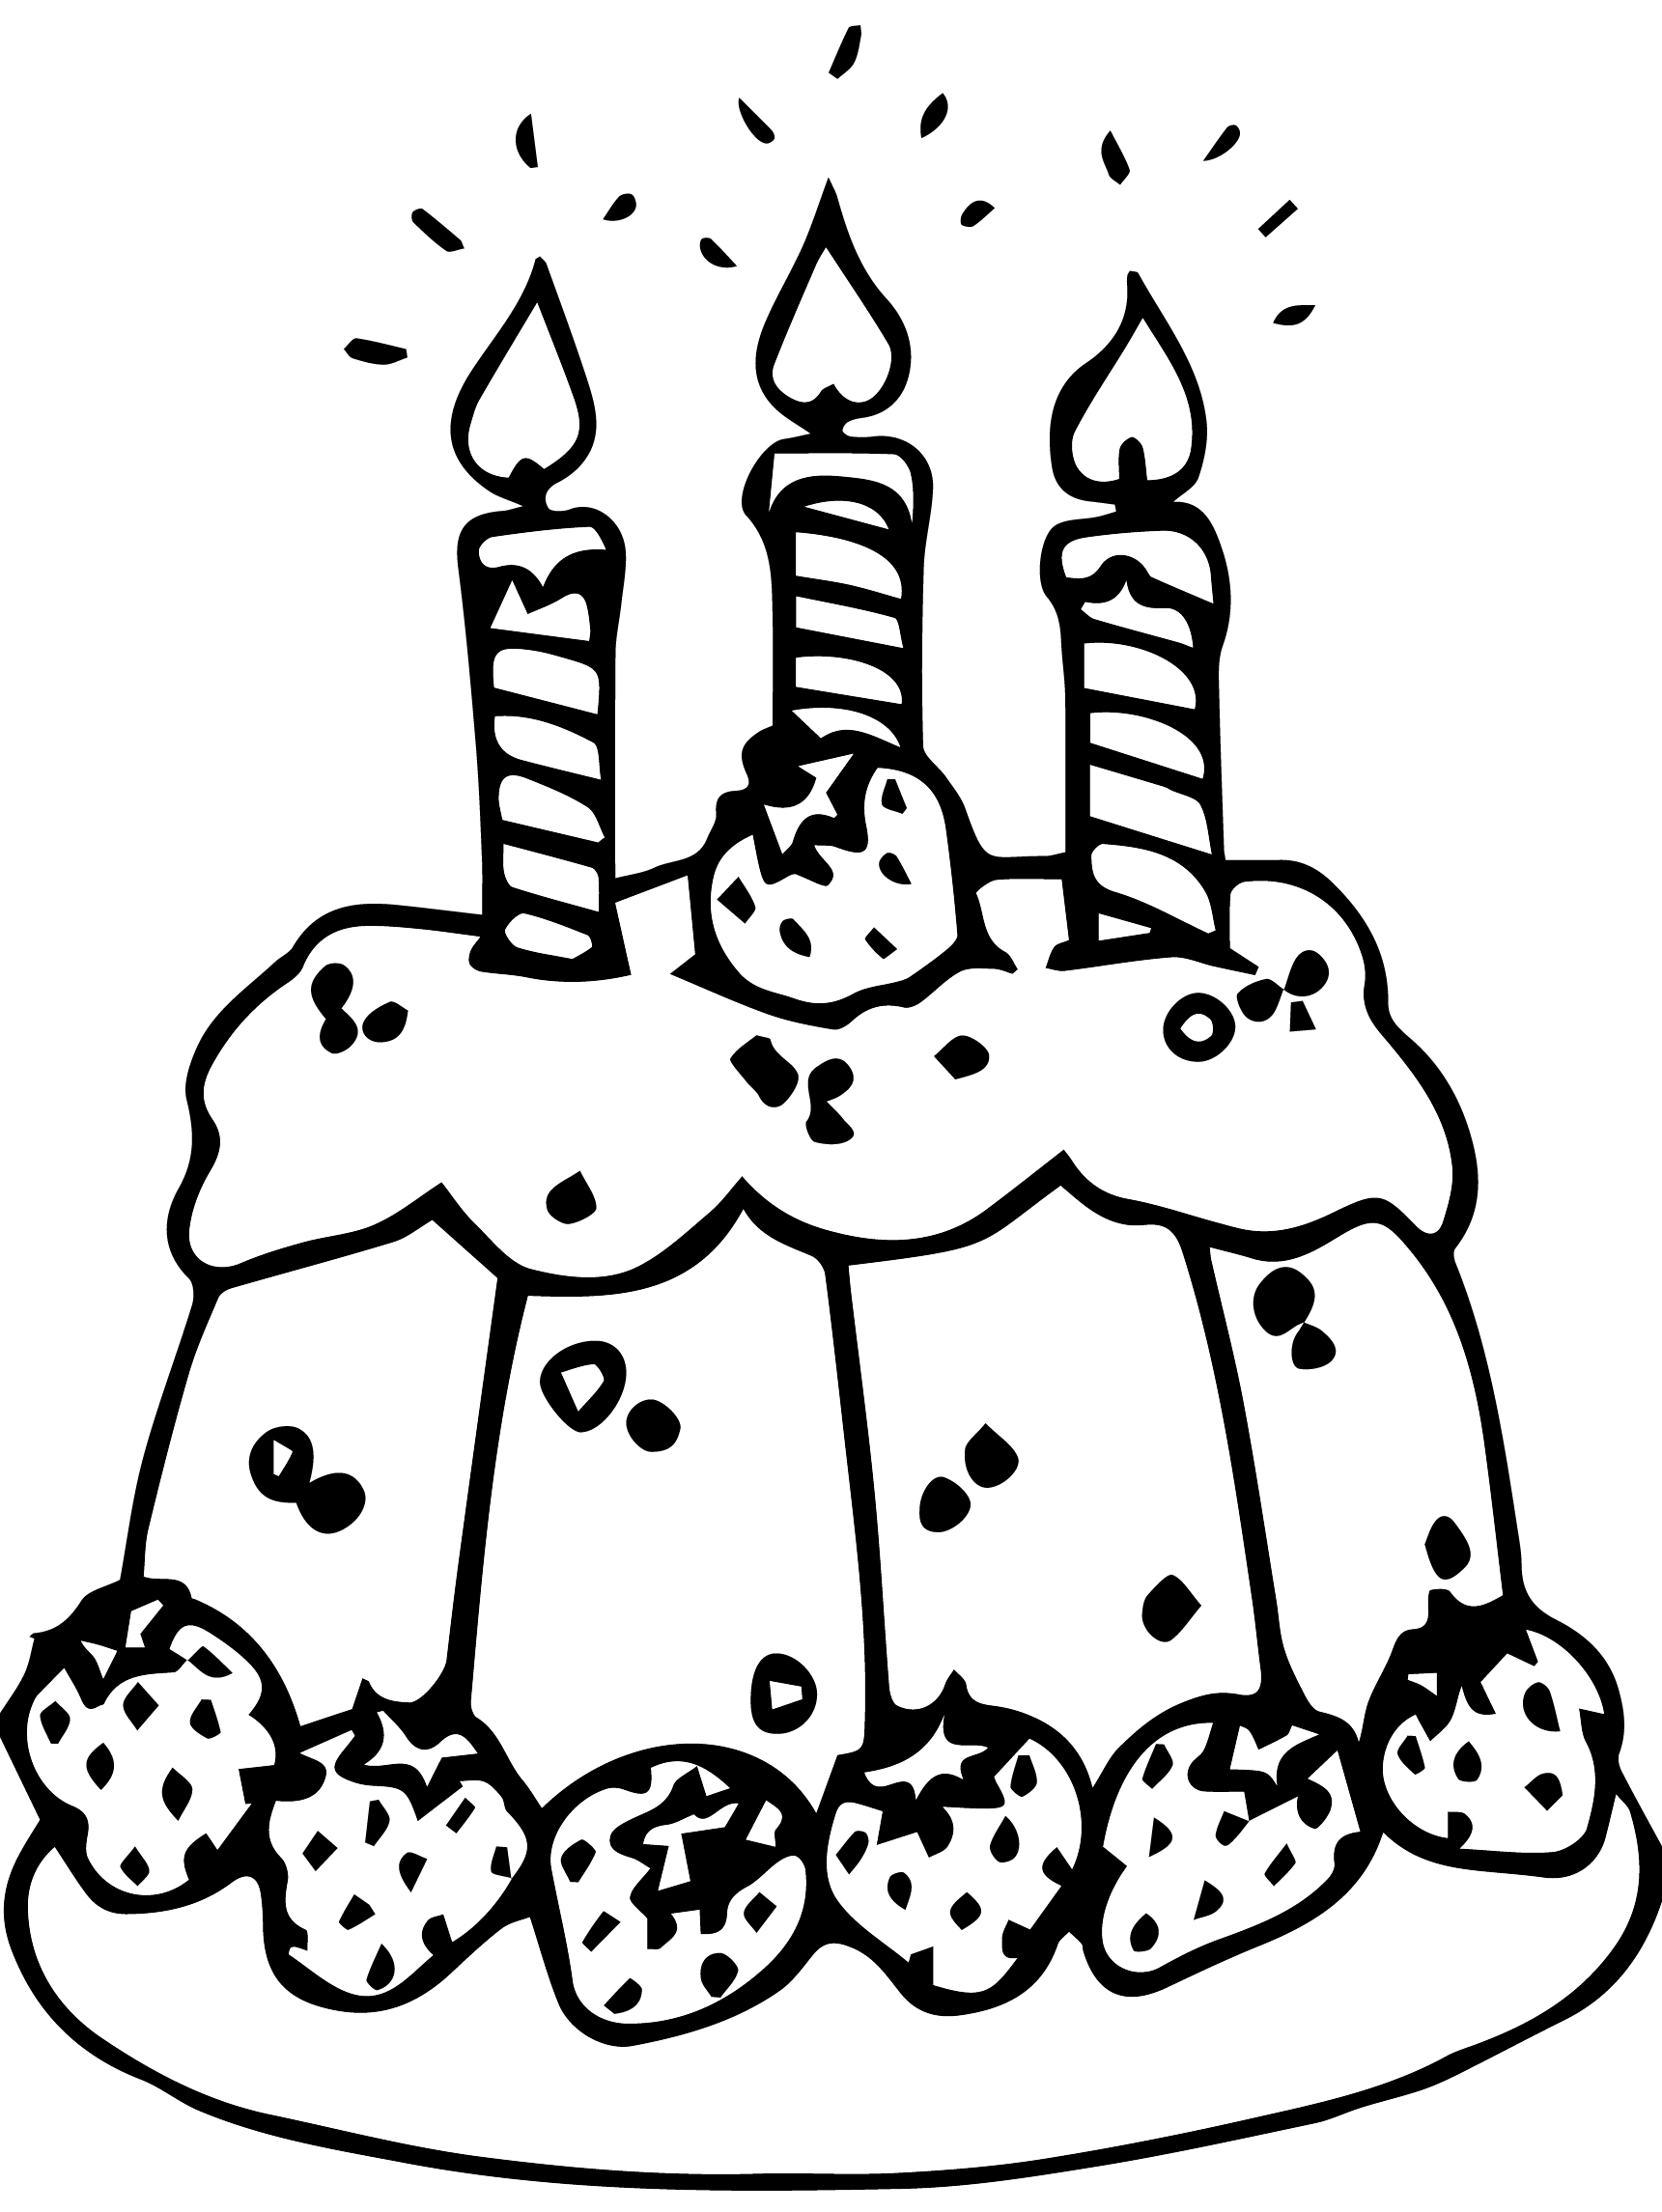 happy 3rd birthday coloring pages birthday coloring pages birthday 3rd pages happy coloring